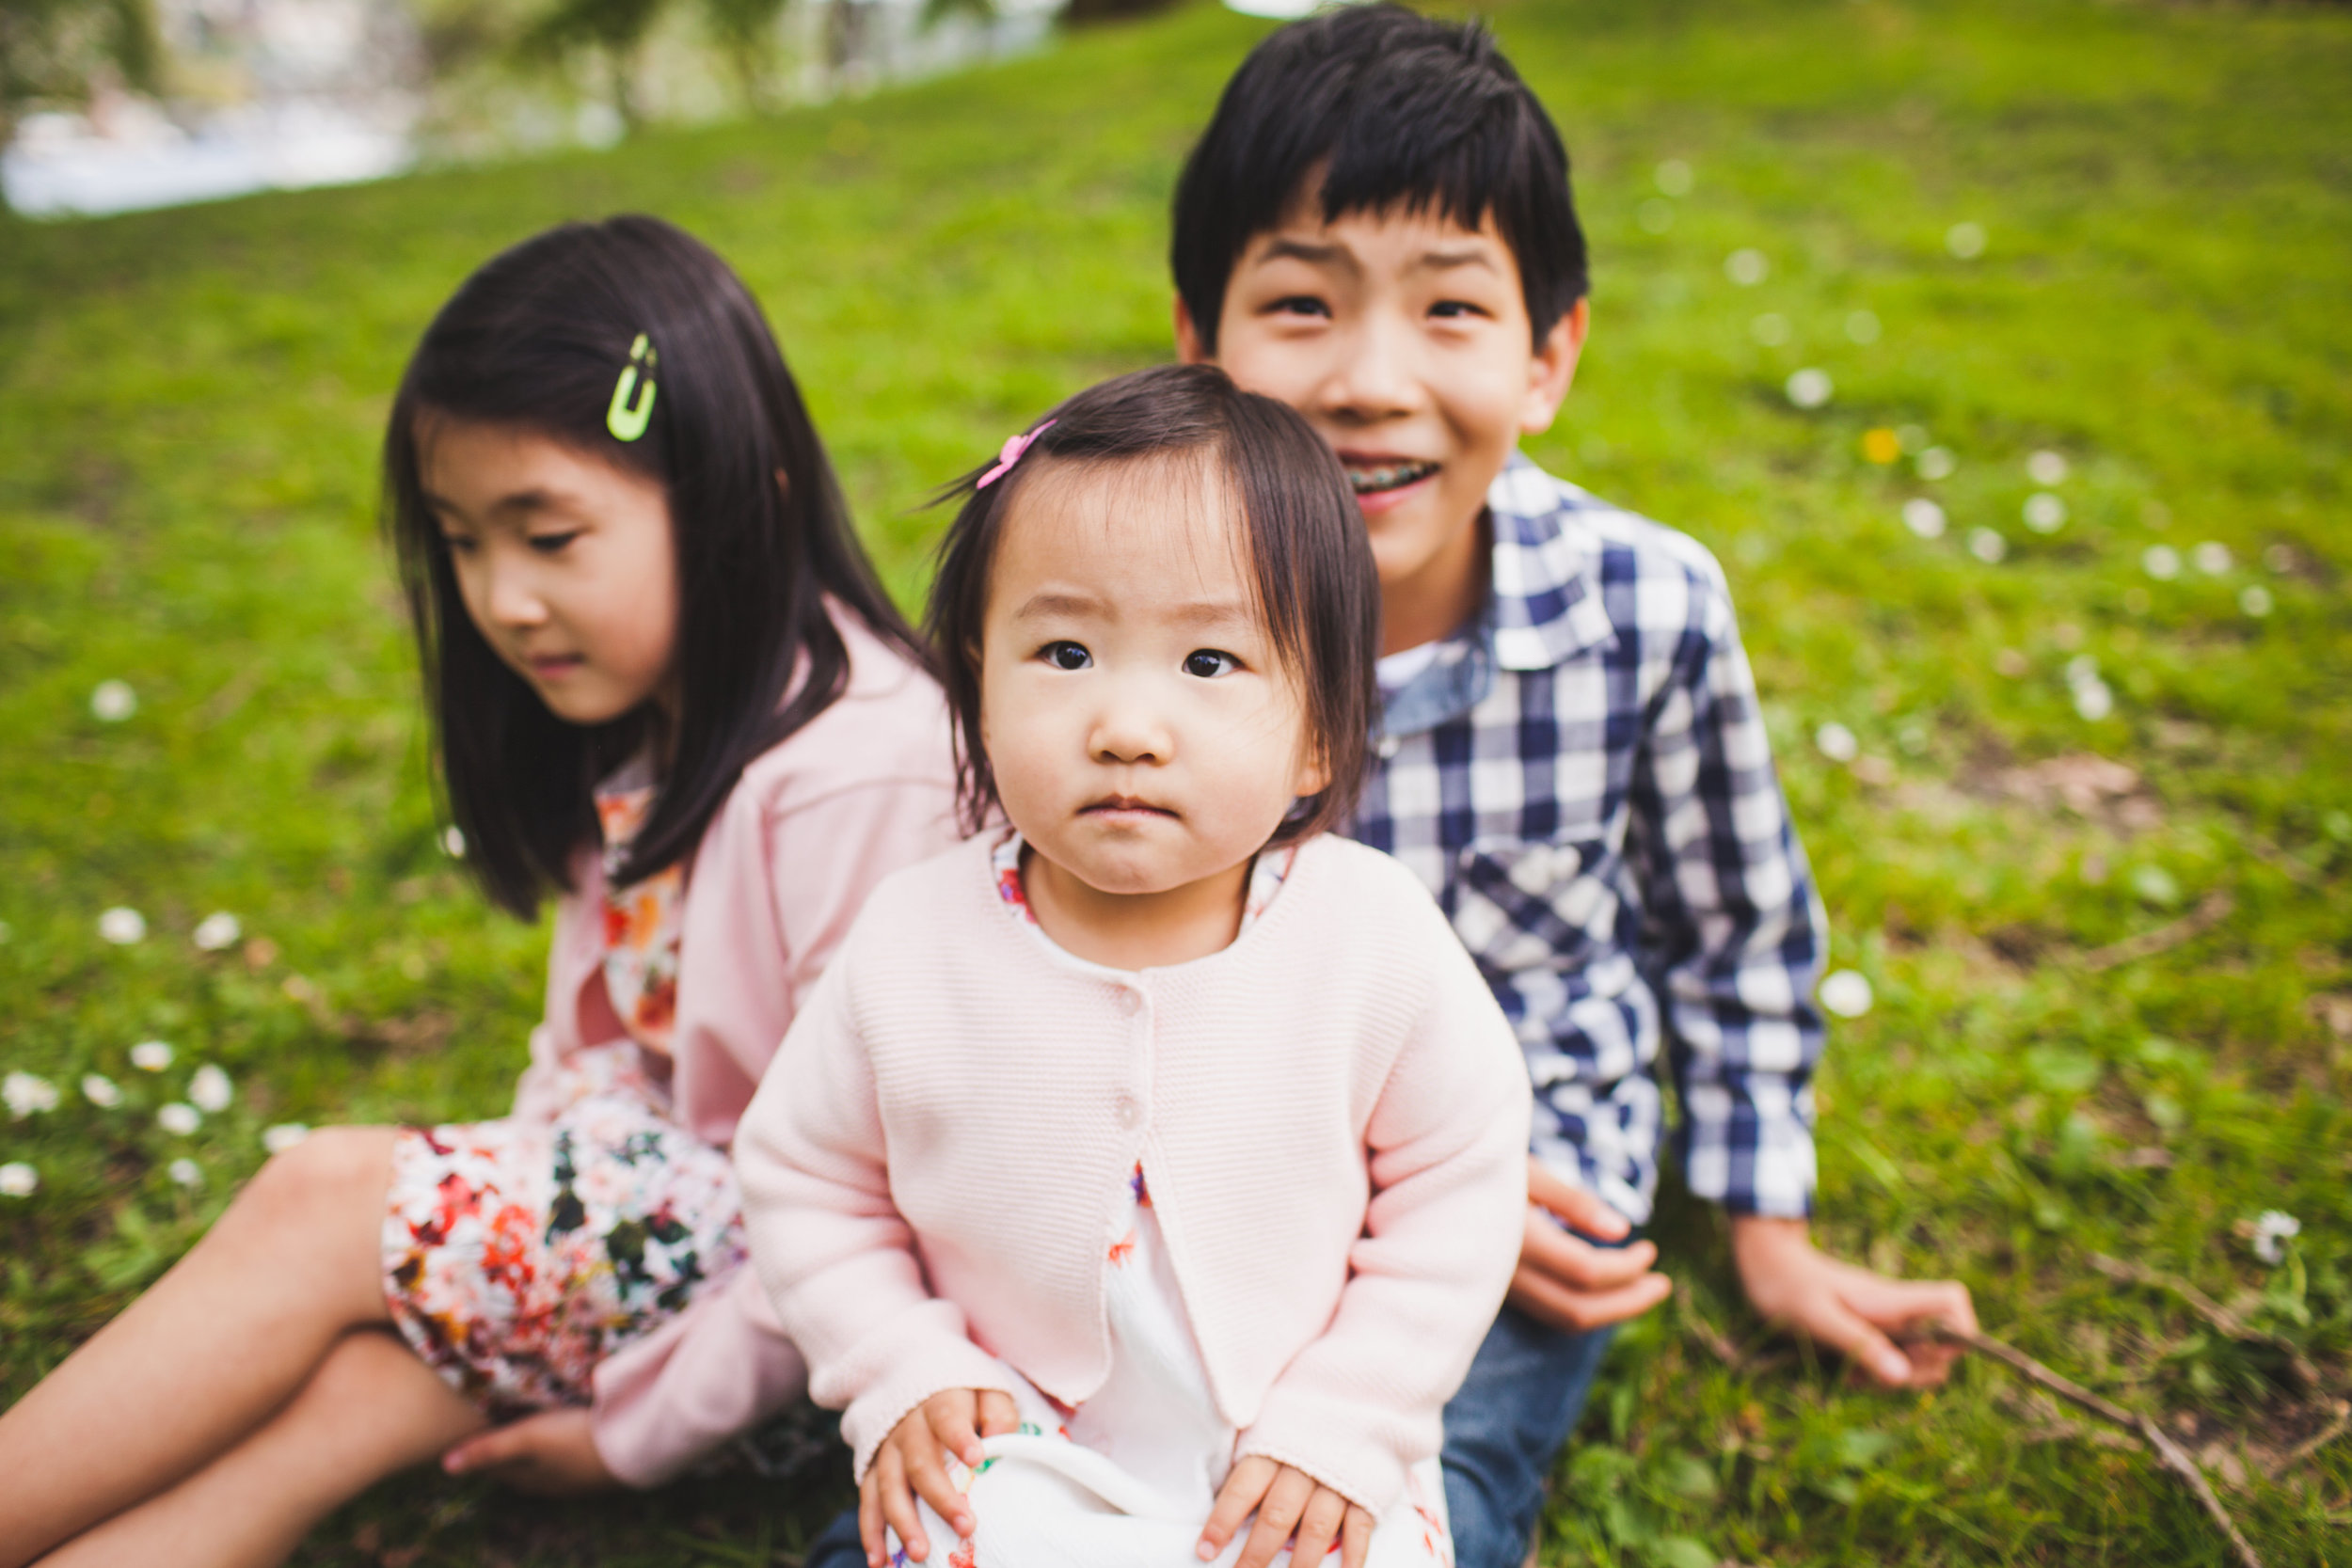 Family Photo Session, Spring 2016 at Gas Works Park in Seattle, WA. Photos by Gabe Rodriguez of Gabriel Boone Photography.